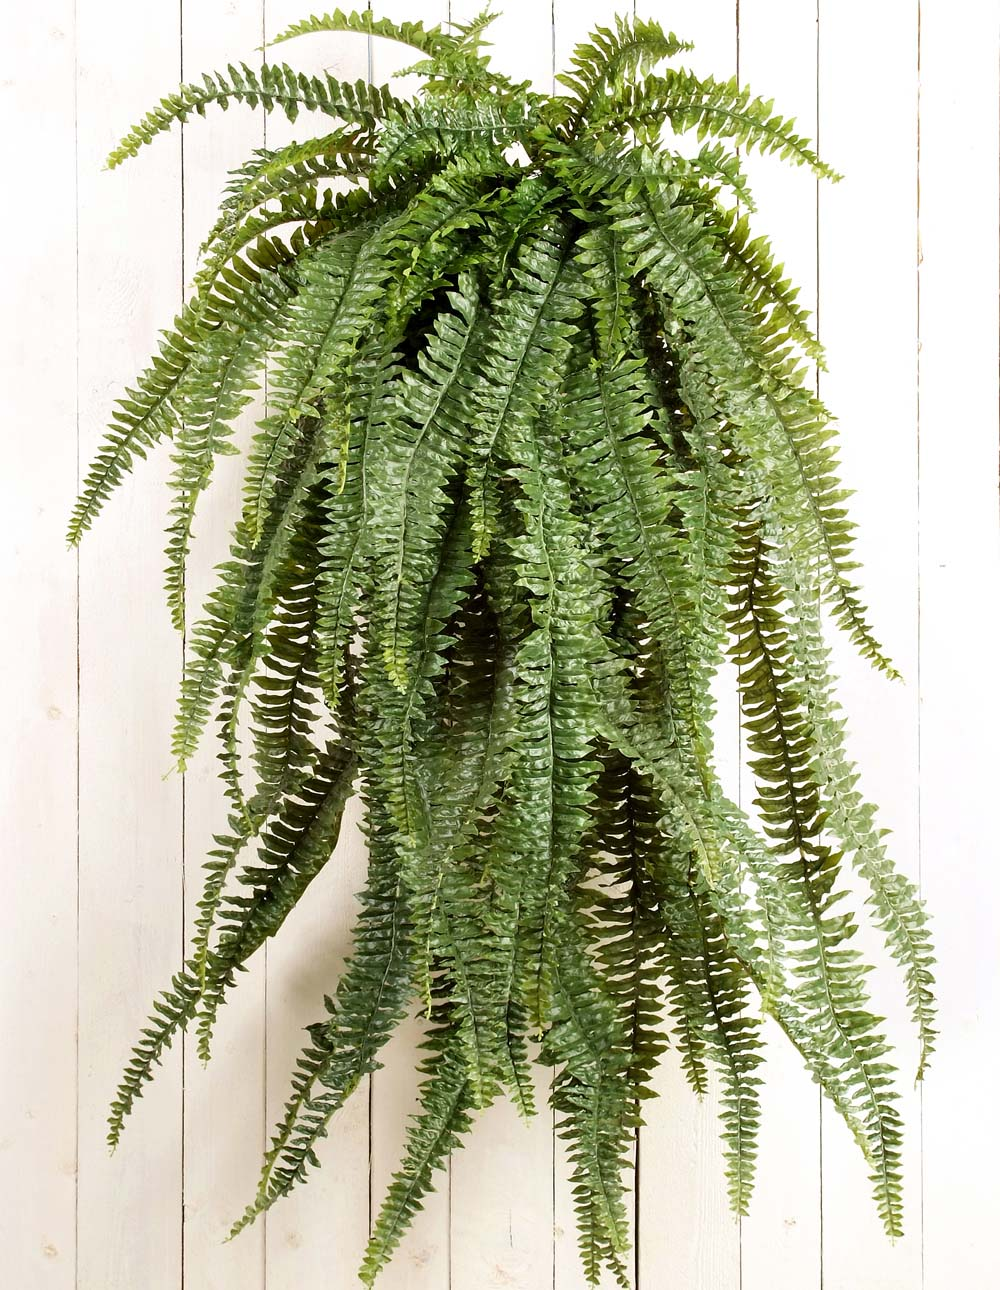 Pictures of hanging plants Books Online - Online Bookshops, Bookstores, Book Shops